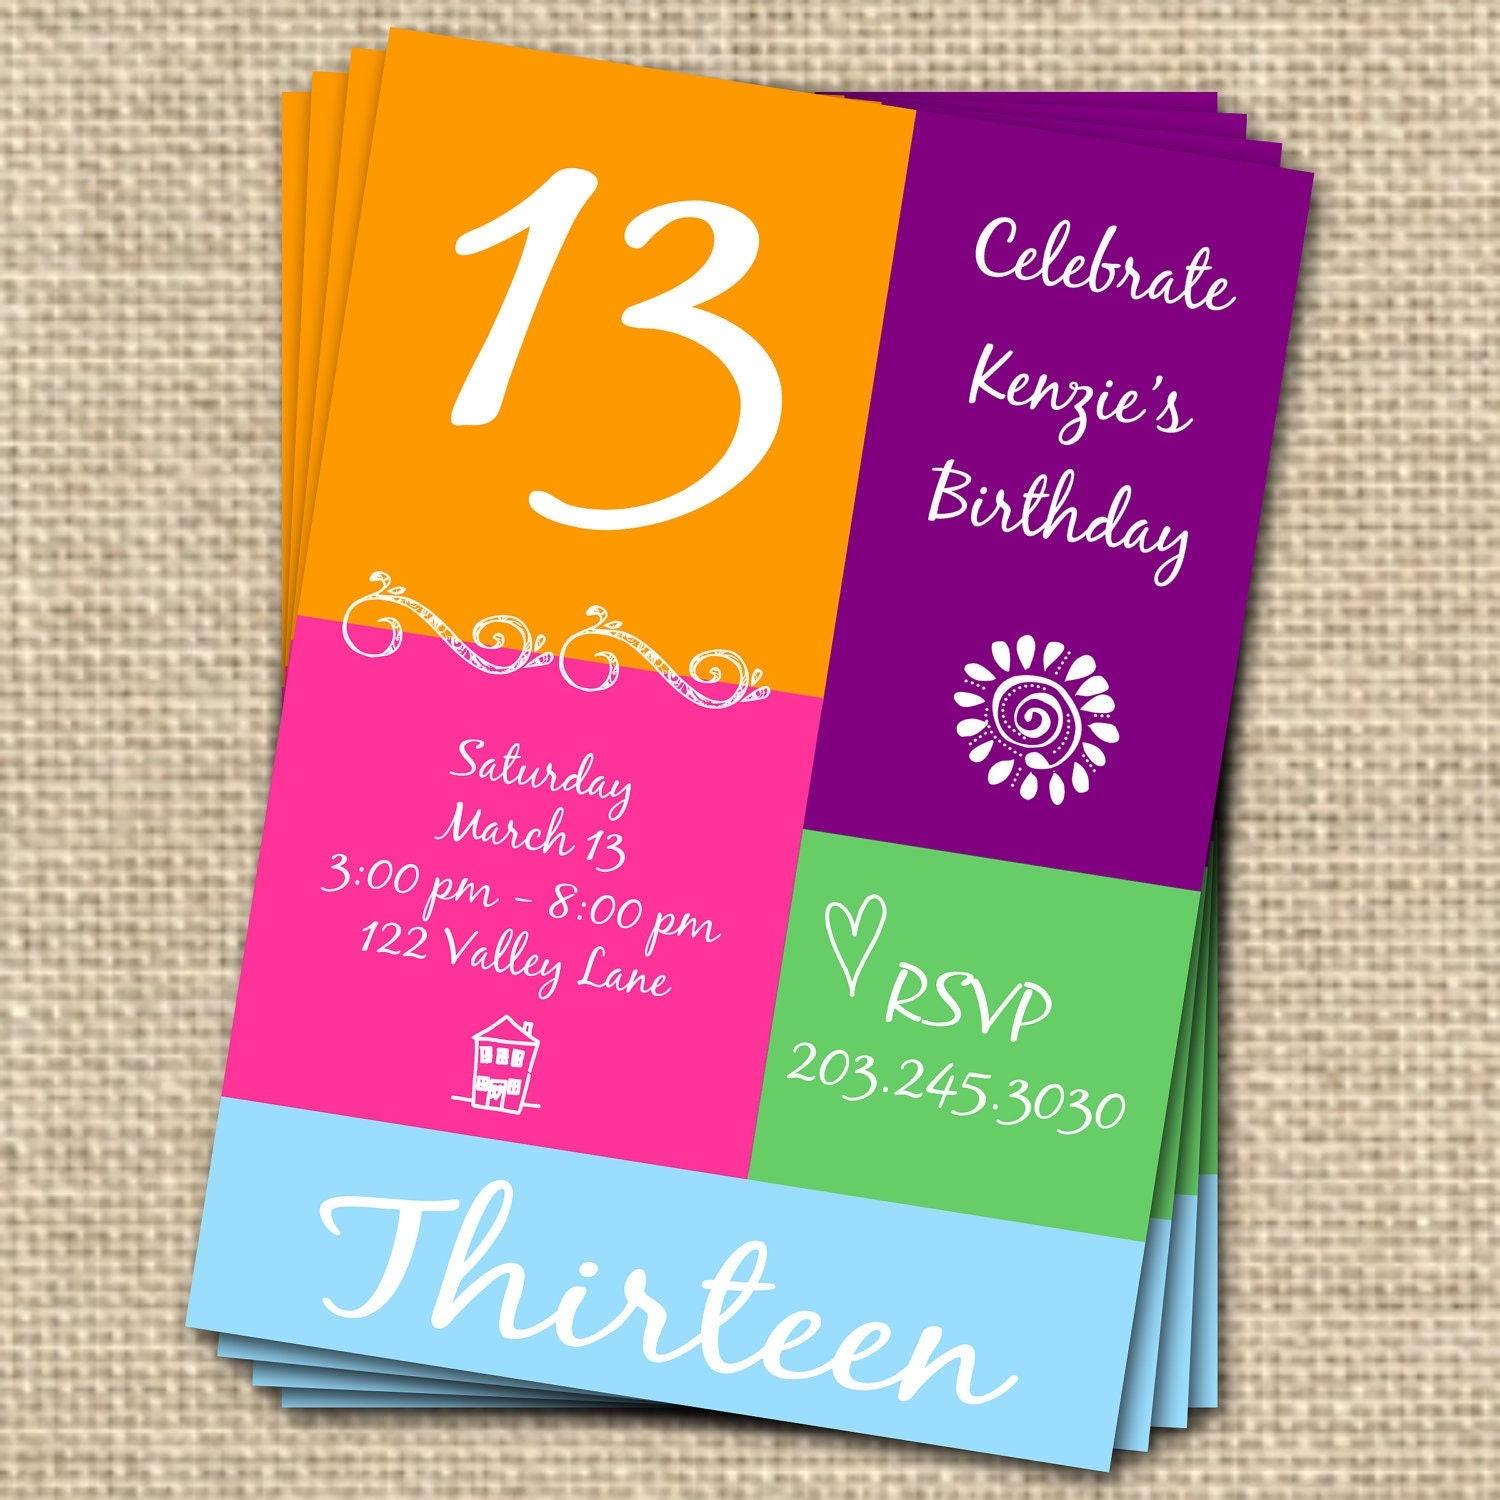 Sample Invitation Wording For 13th Birthday Party Sample Birthday – Invitations for 13th Birthday Party